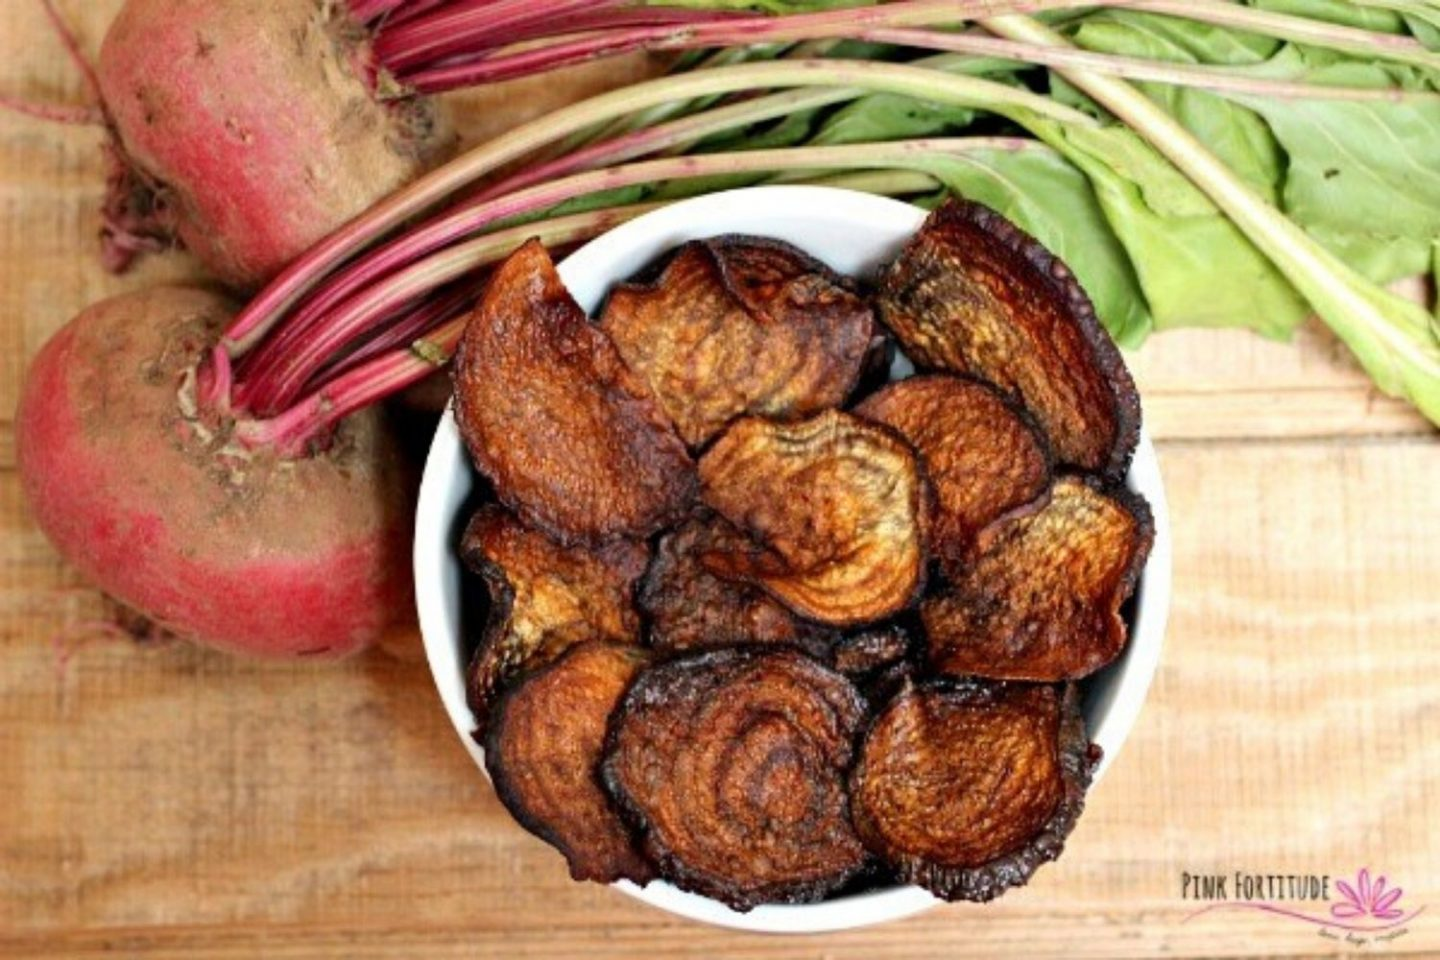 oven baked beet chips - plastic free snacks